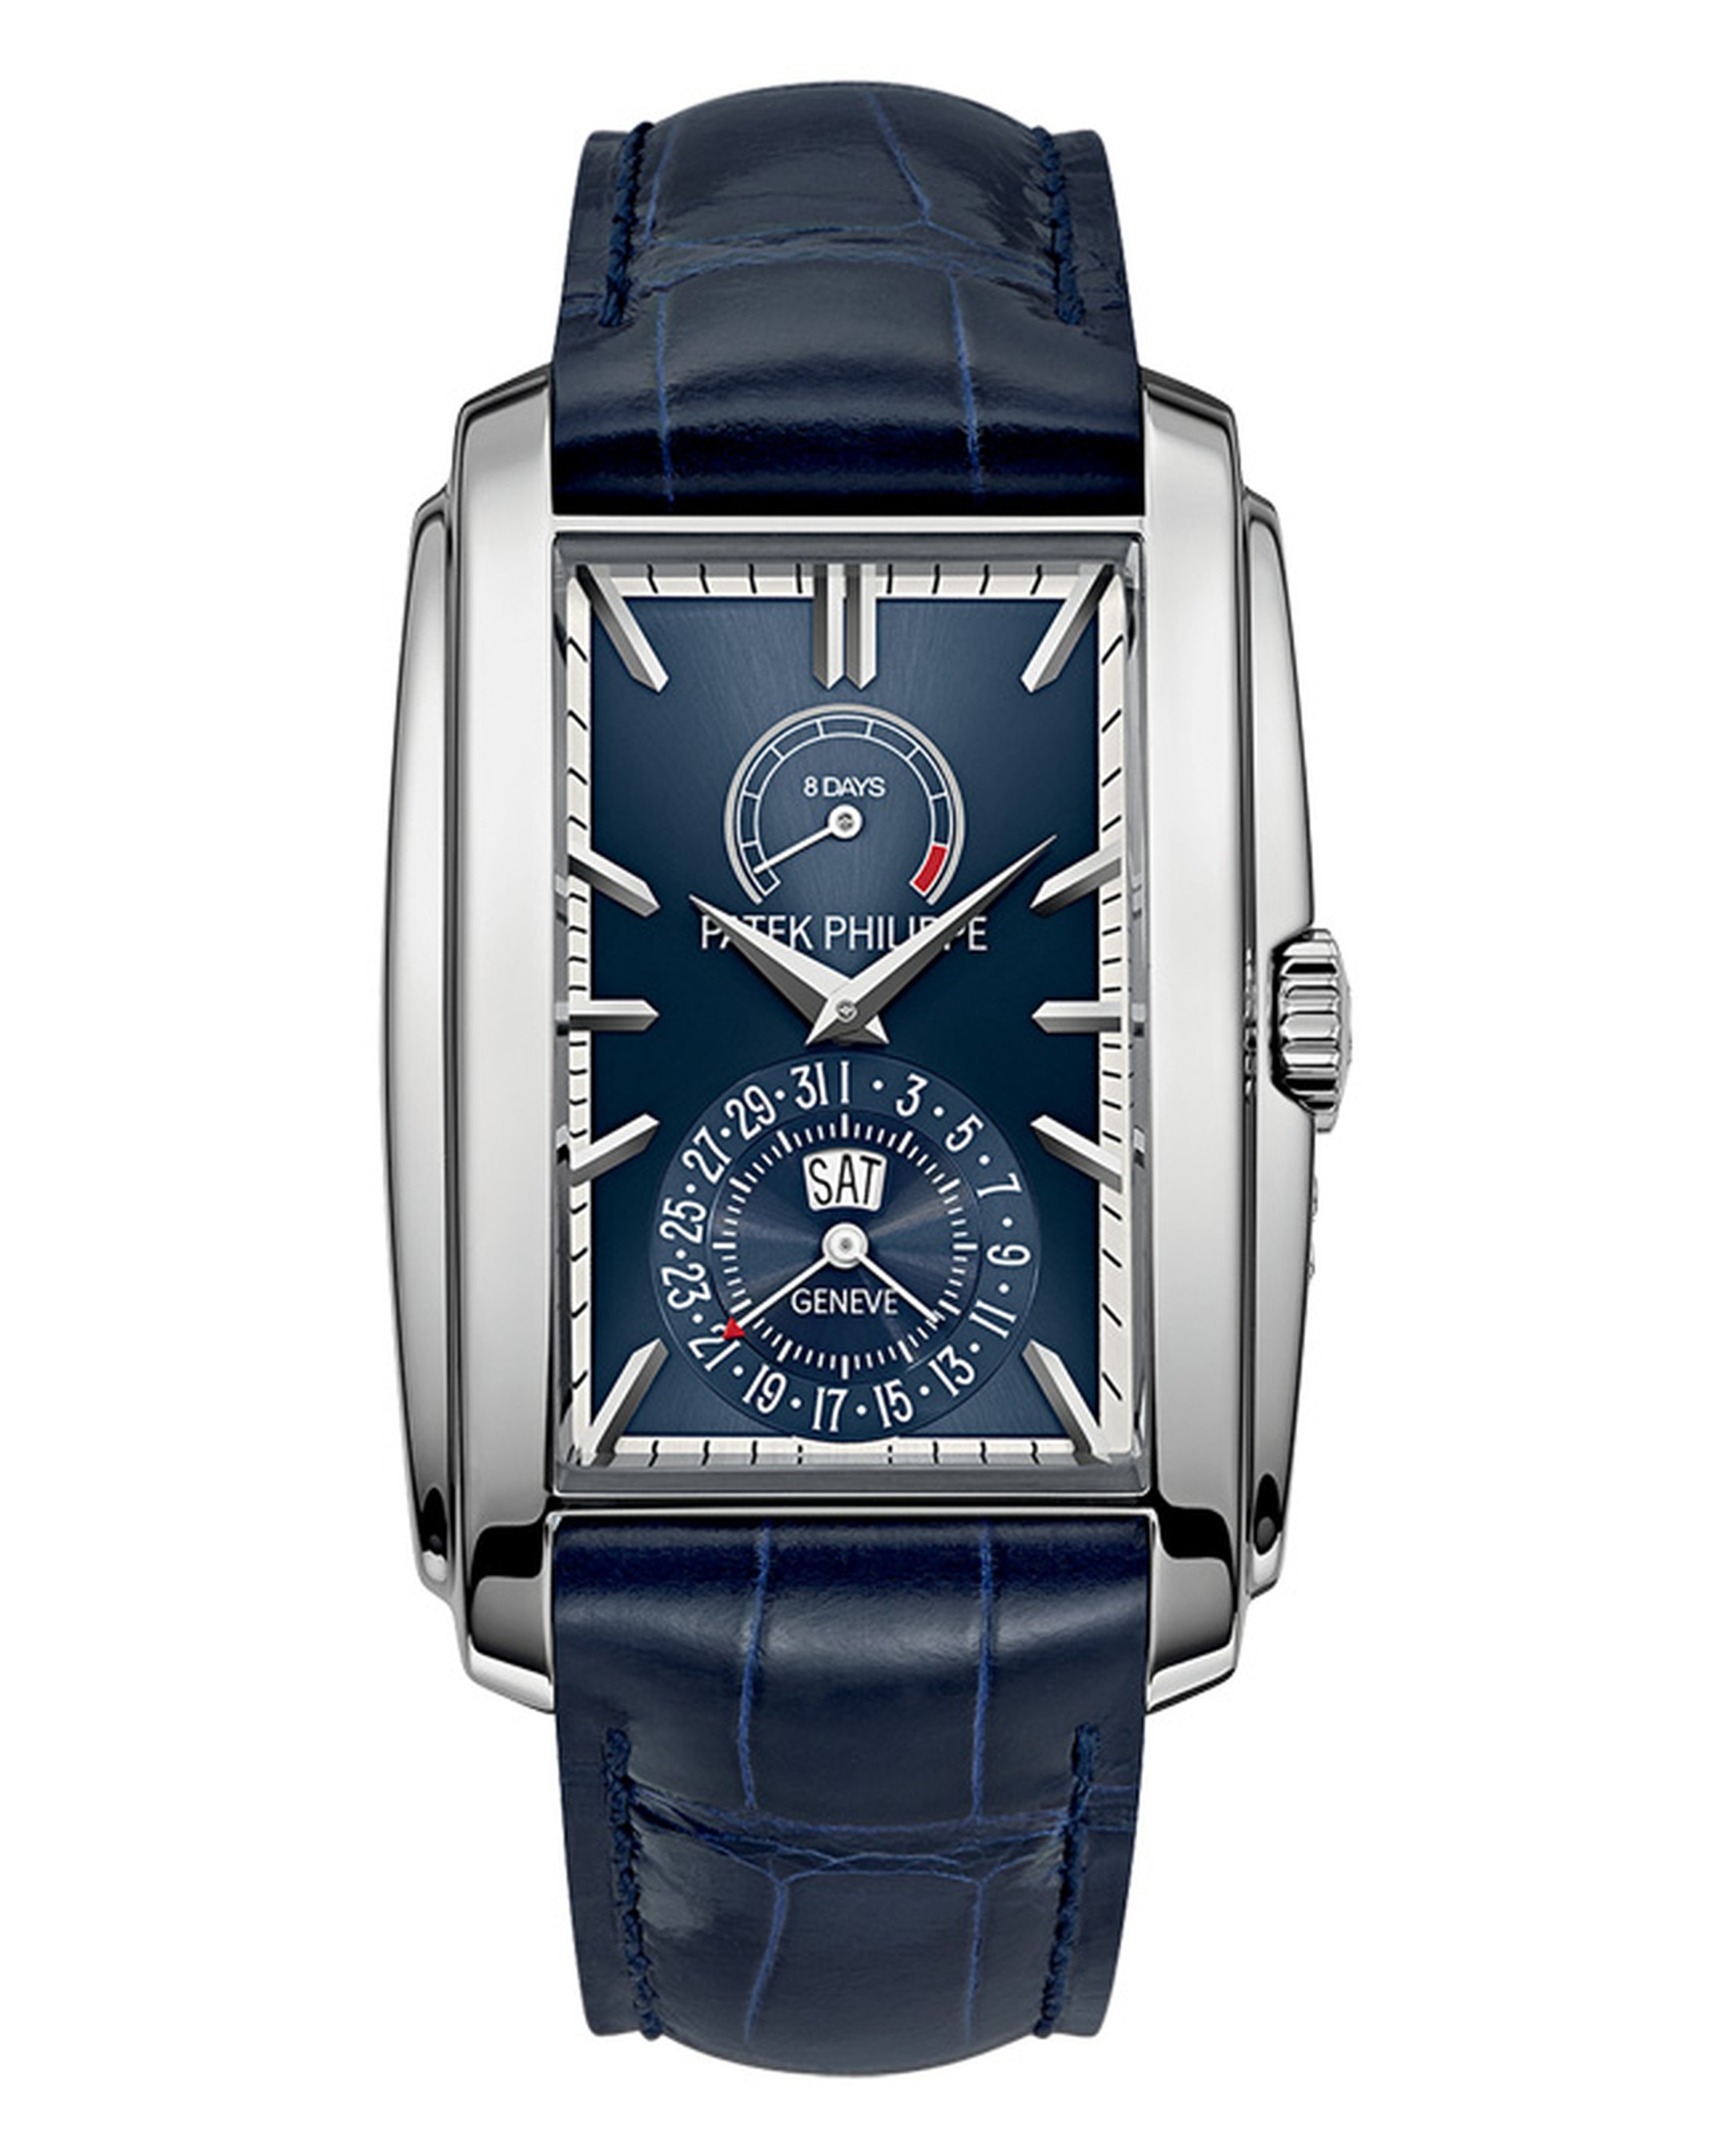 Patek Philippe Gondolo Ref 5200 8 Days, Day & Date Indication_20130711_Main